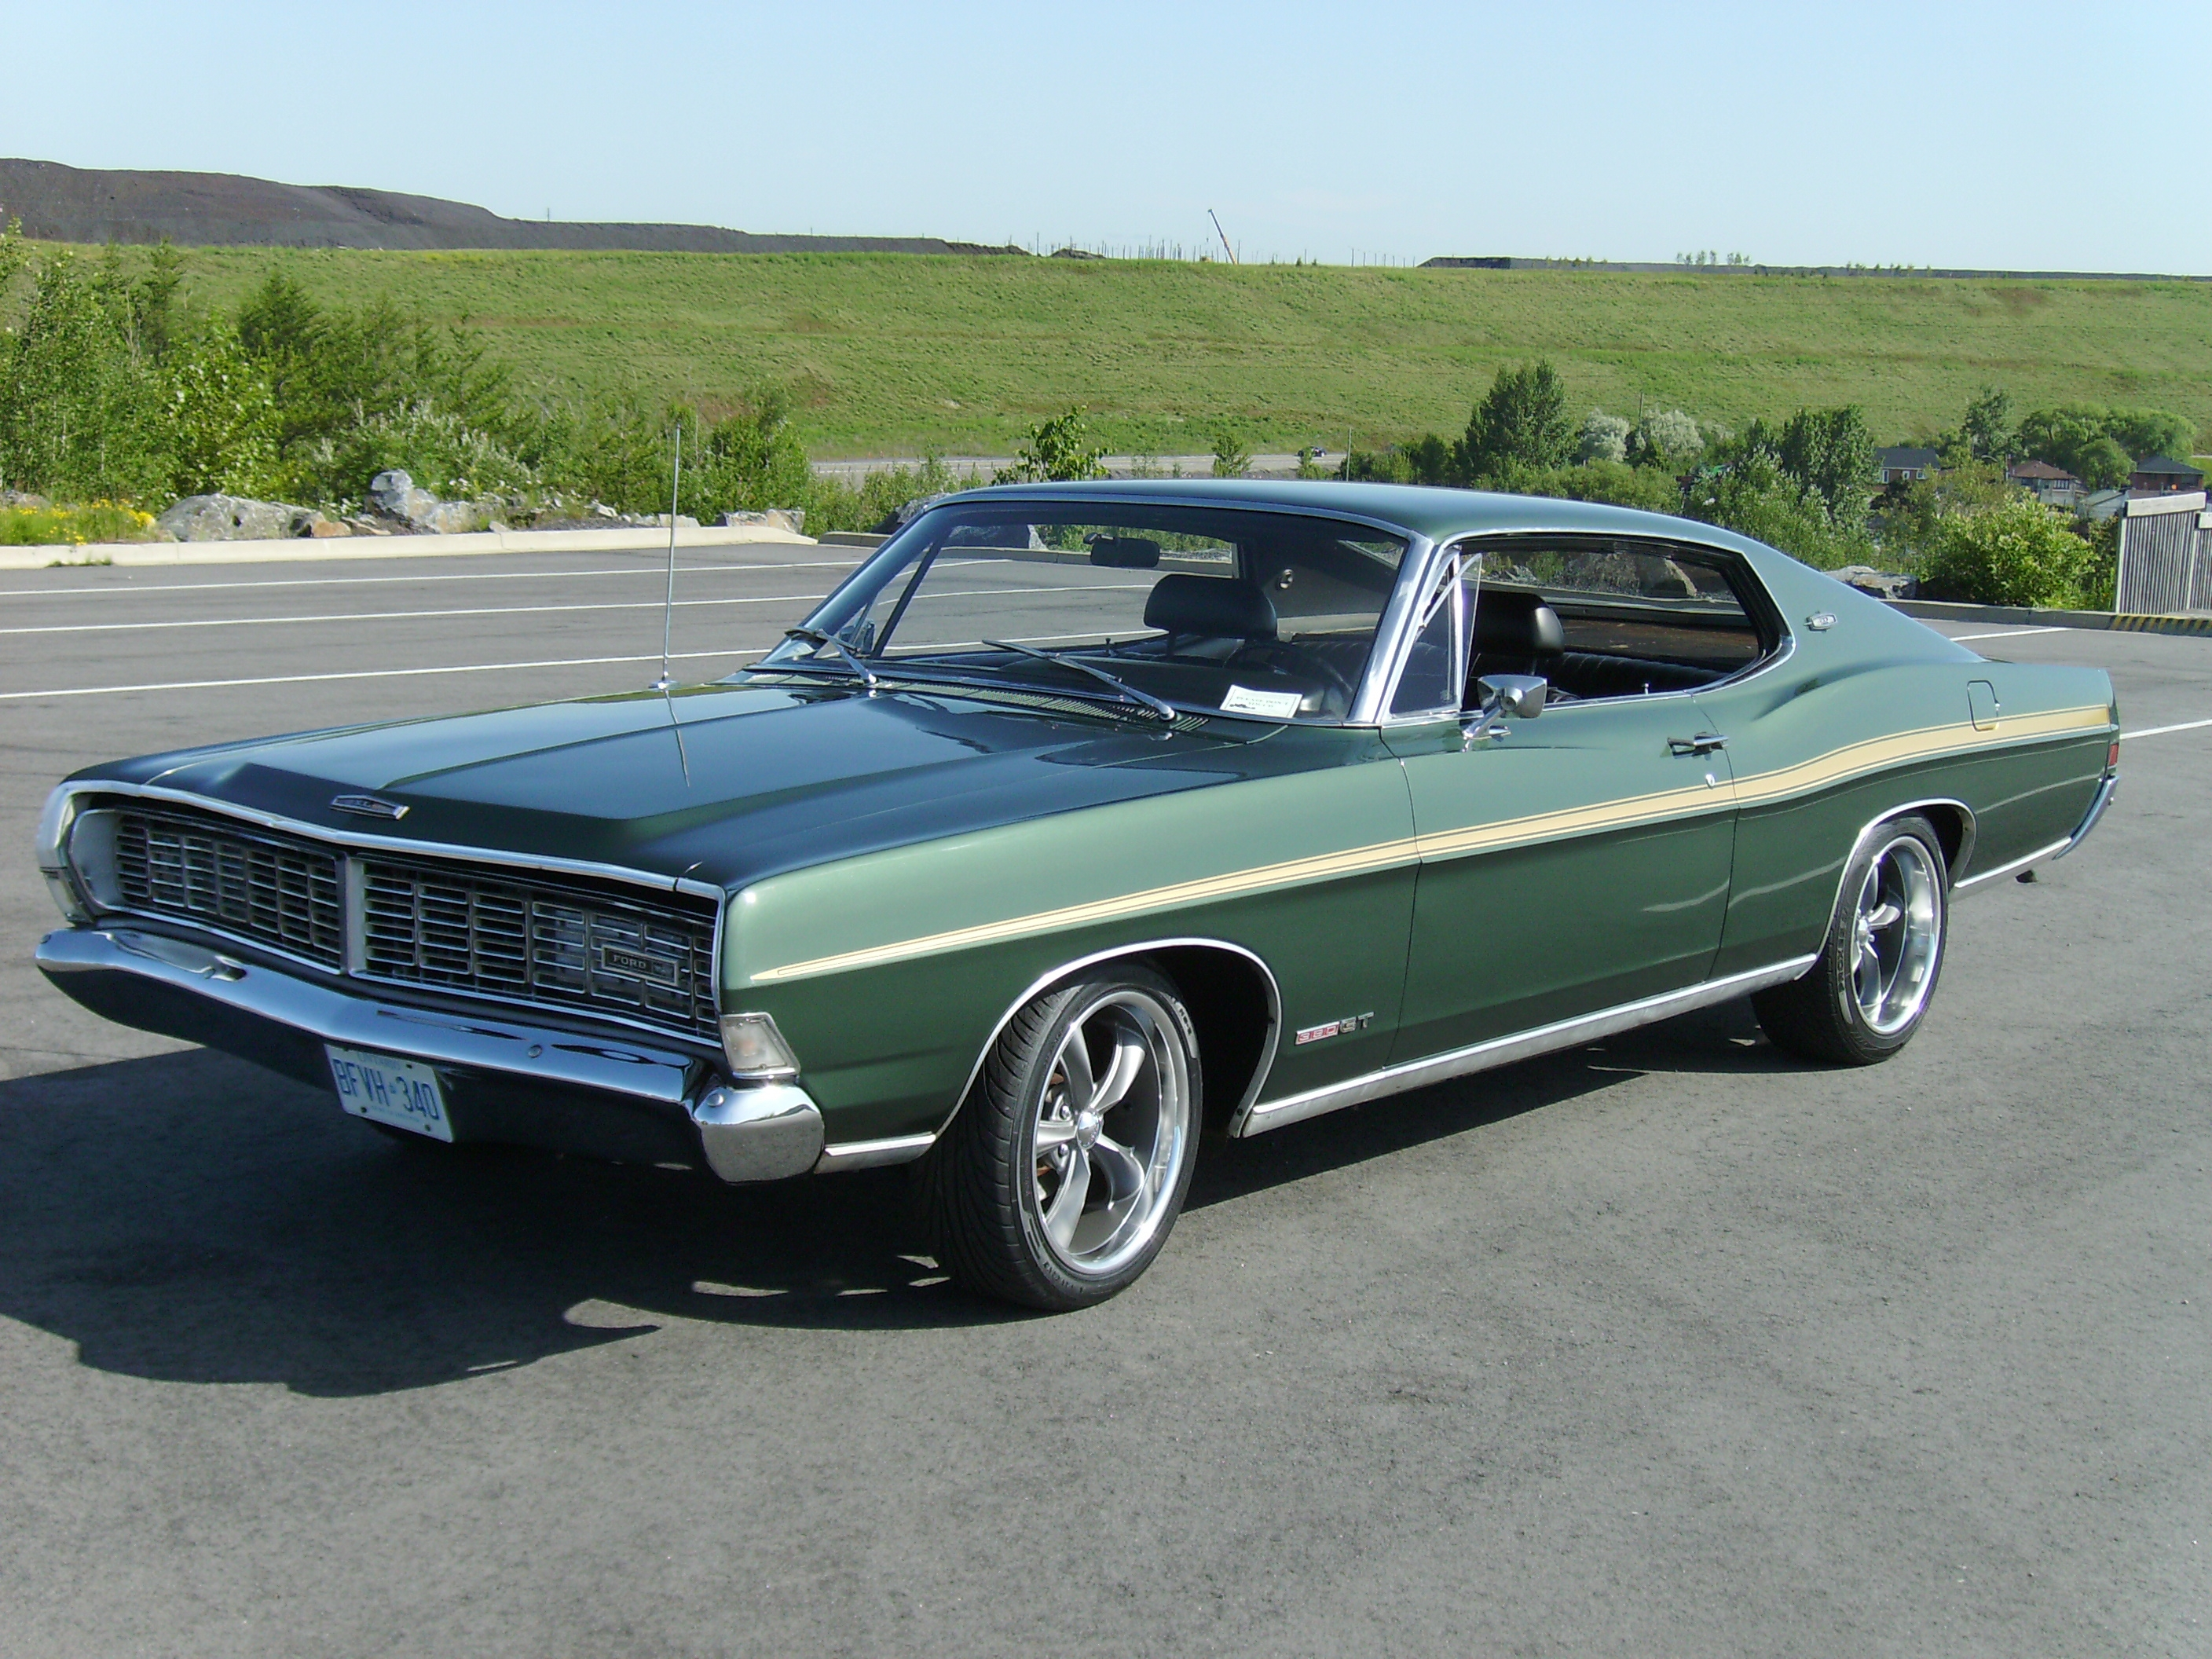 jenden1808 1968 ford galaxie specs photos modification info at cardomain. Black Bedroom Furniture Sets. Home Design Ideas